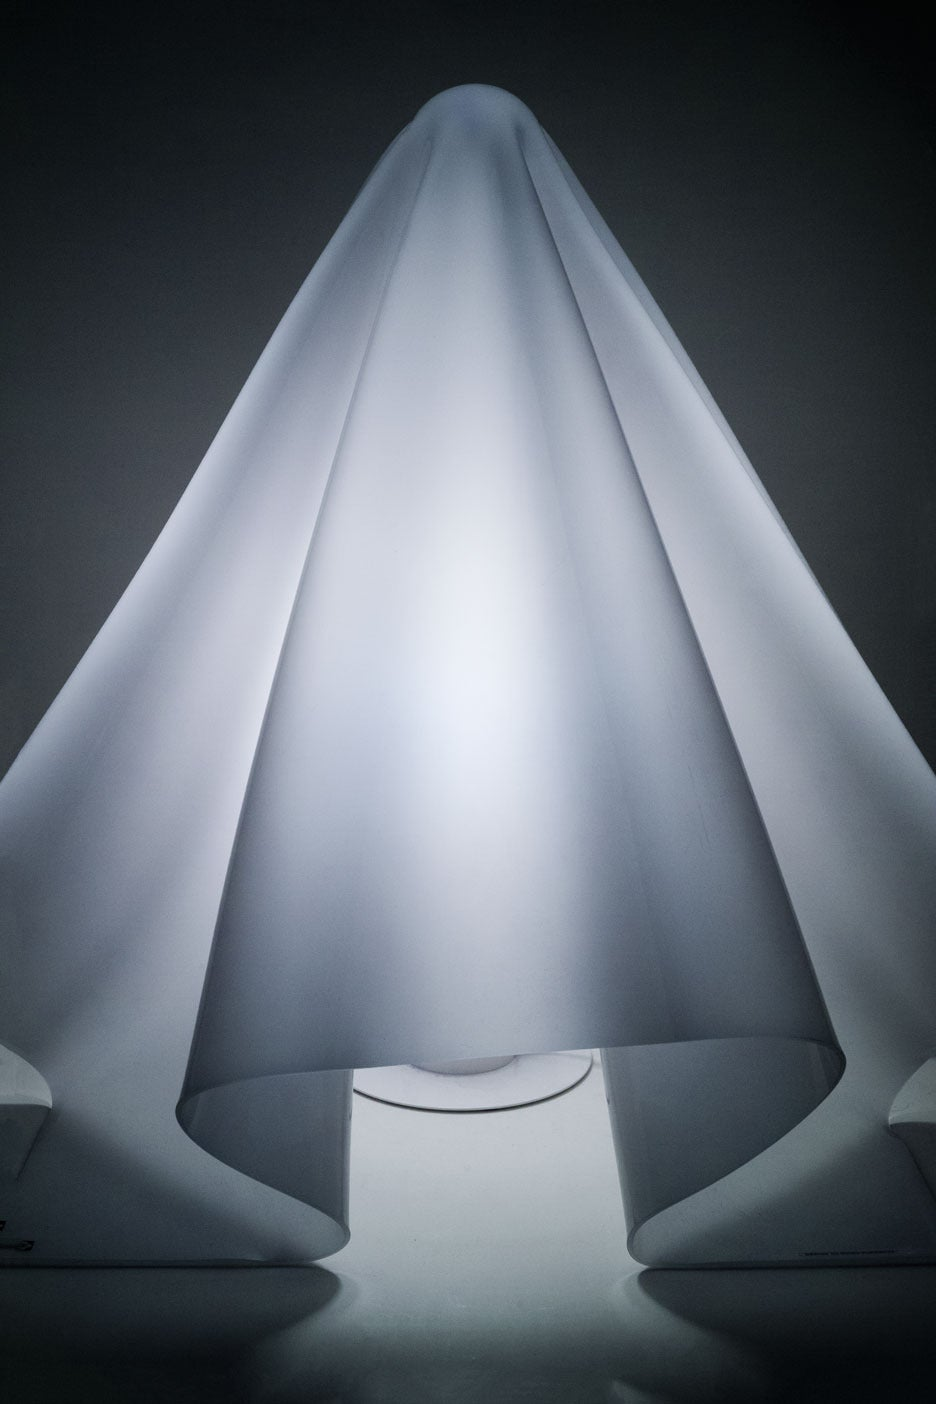 Minimalist Large White Hand-Formed Ghost Lamp by Shiro Kuramata, 1970s